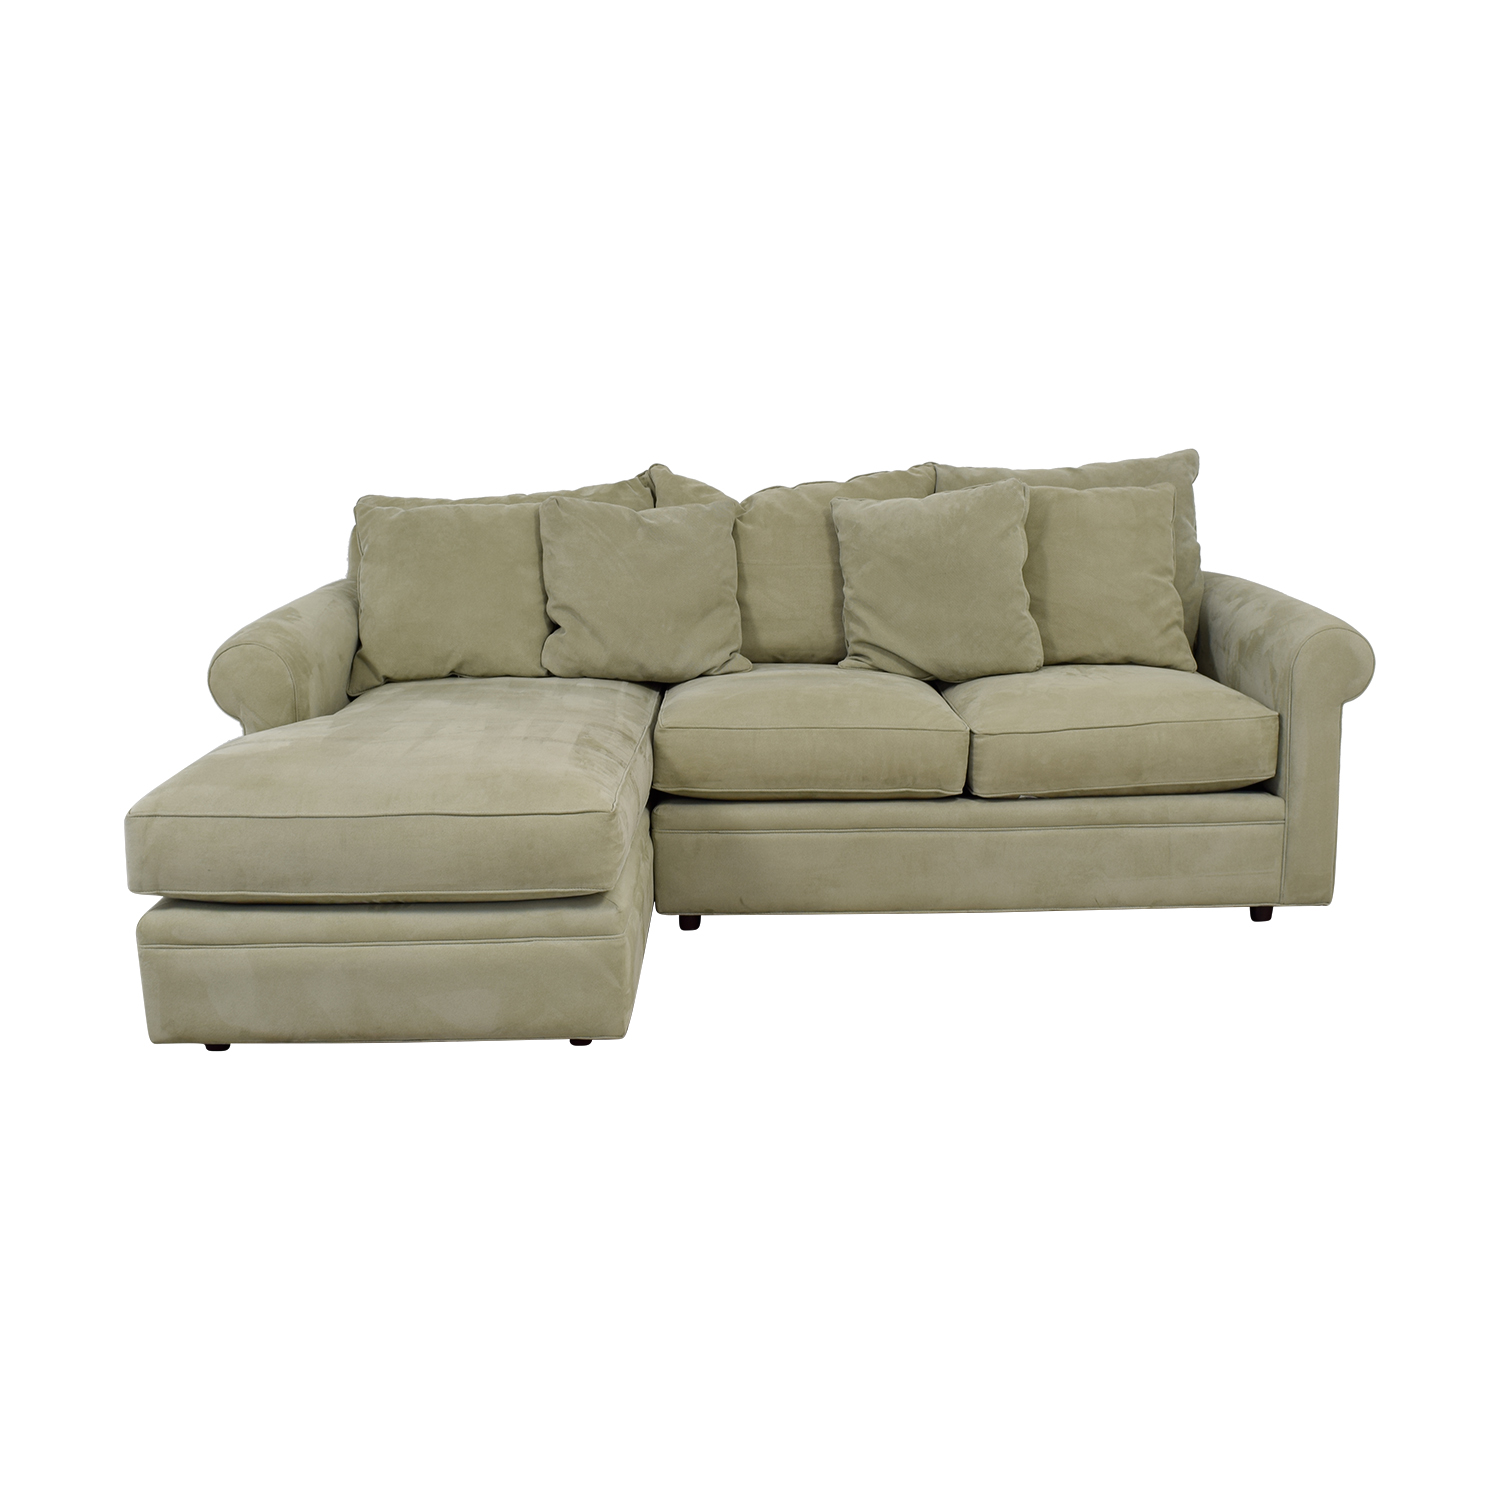 shop Modern Concepts Modern Concepts Doss II Grey Chaise Sectional online